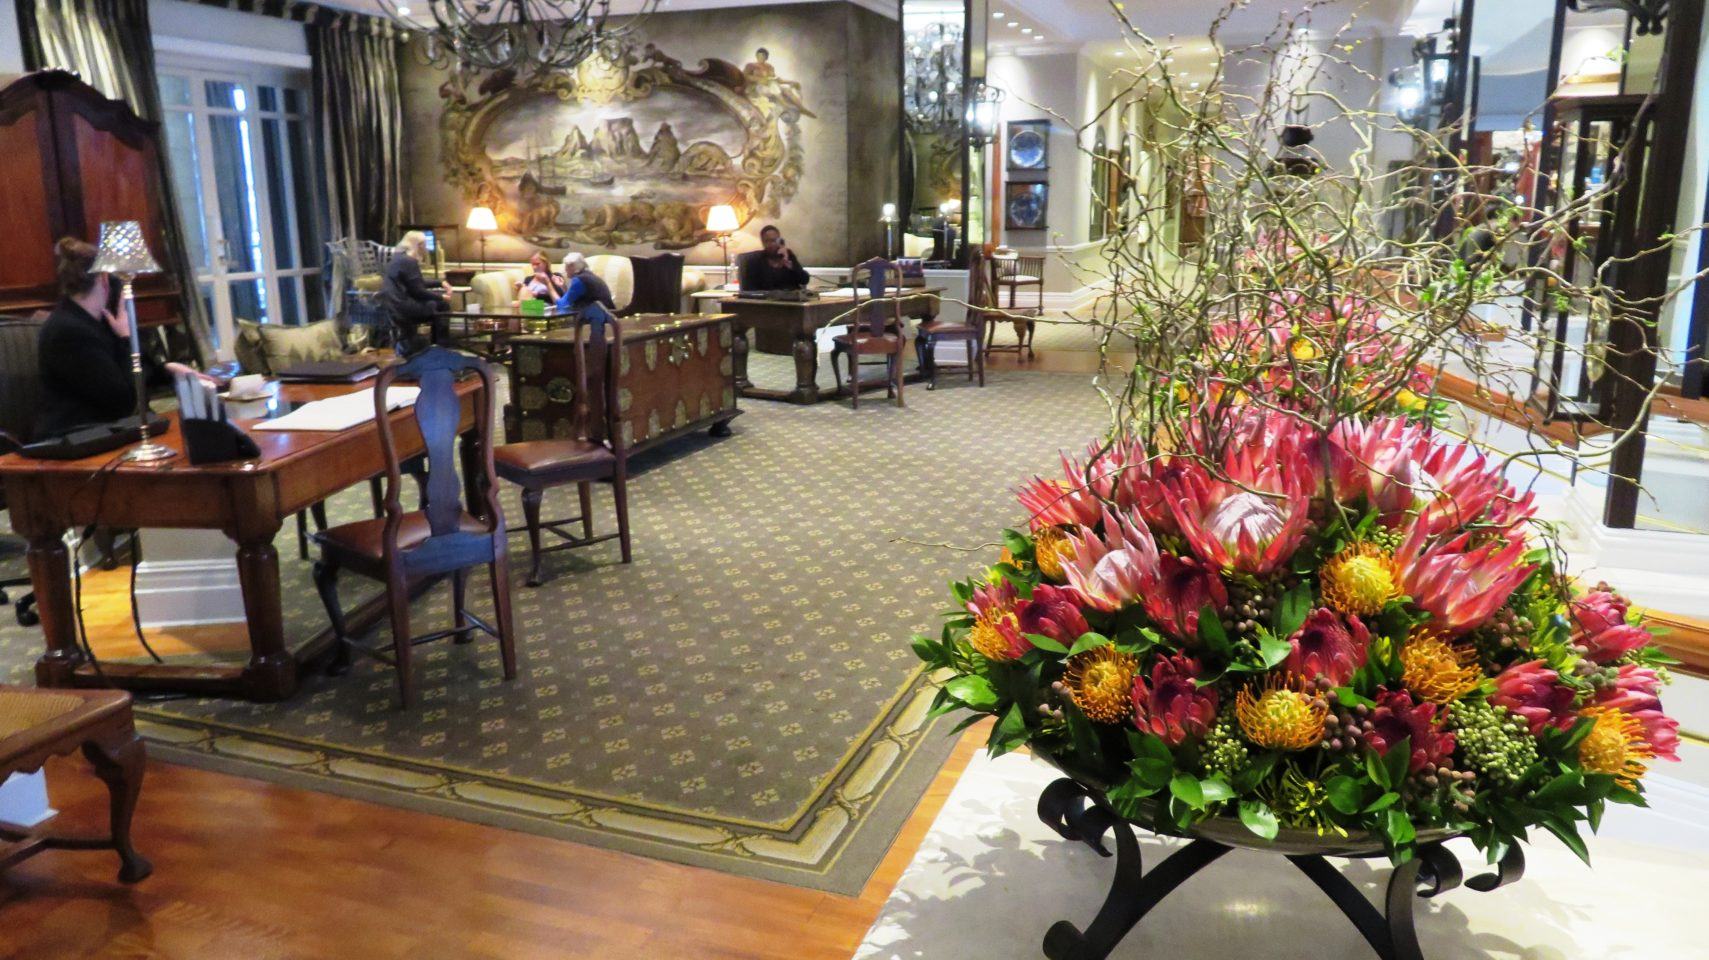 Reception area at Cape Grace Hotel in Cape Town, South Africa